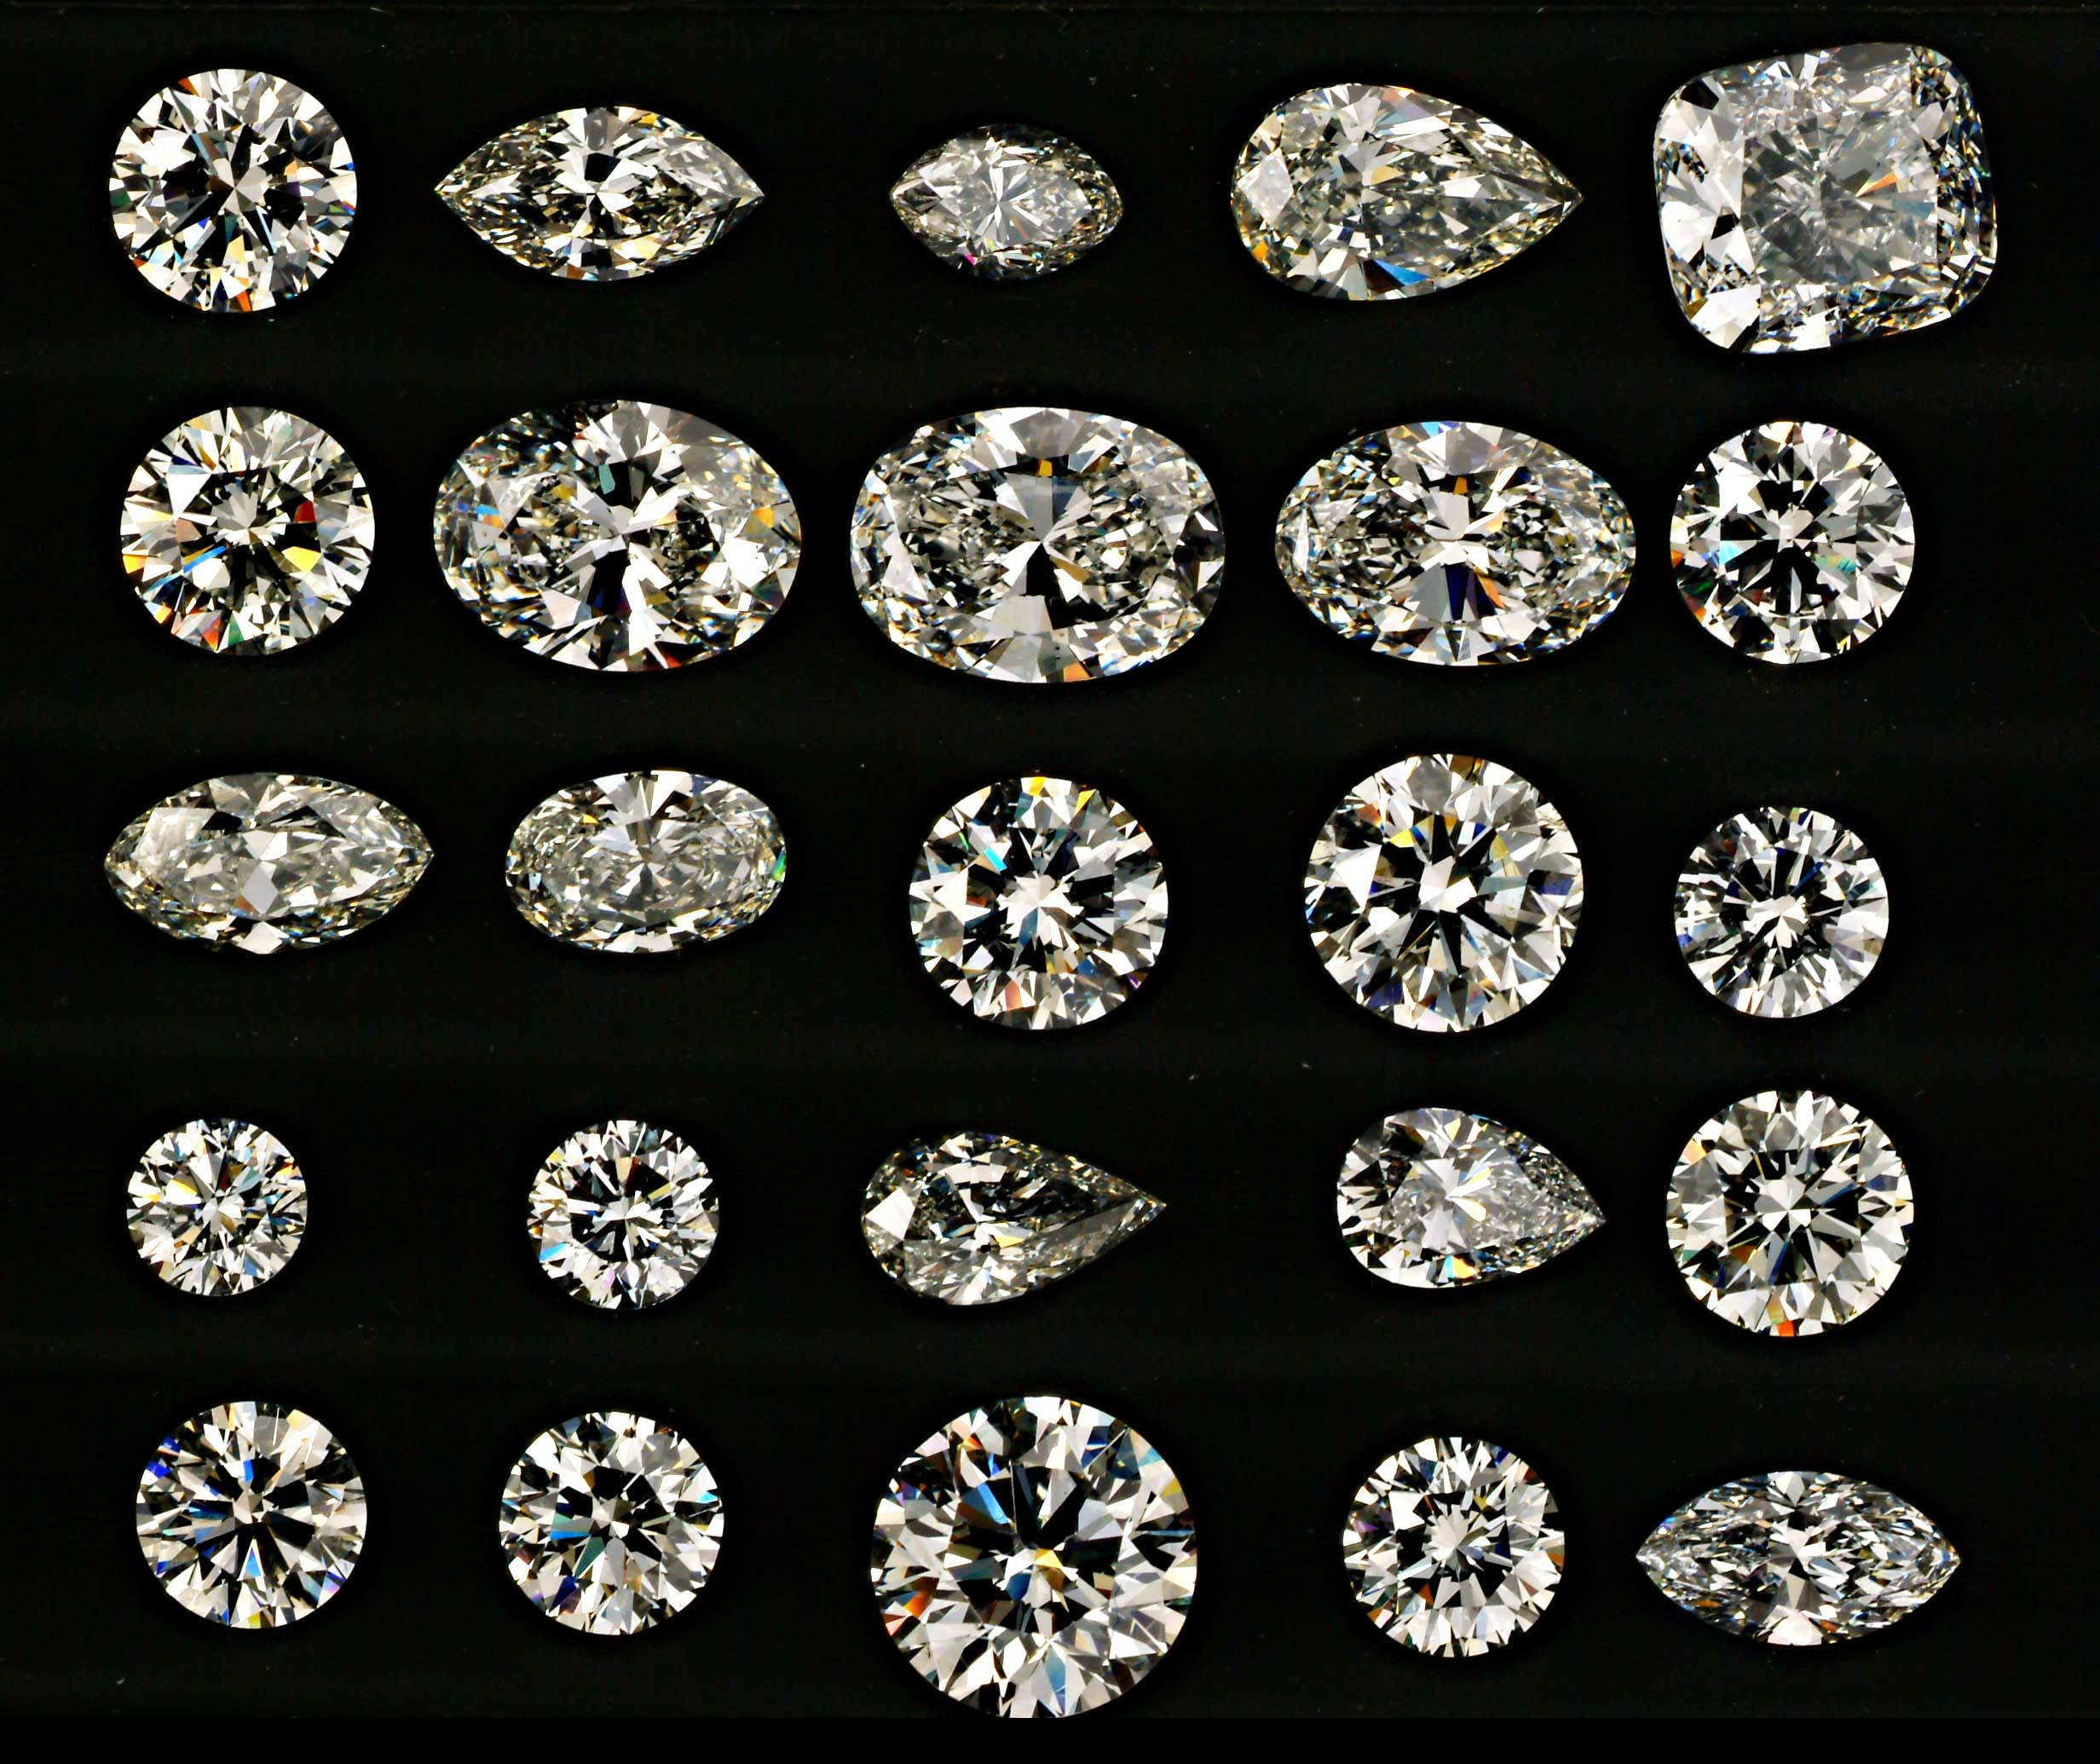 diamonds topshots blue fluorescence pheng gemologist diamond a strong why auction steve switzerland investment are safe and graduate gia profitable